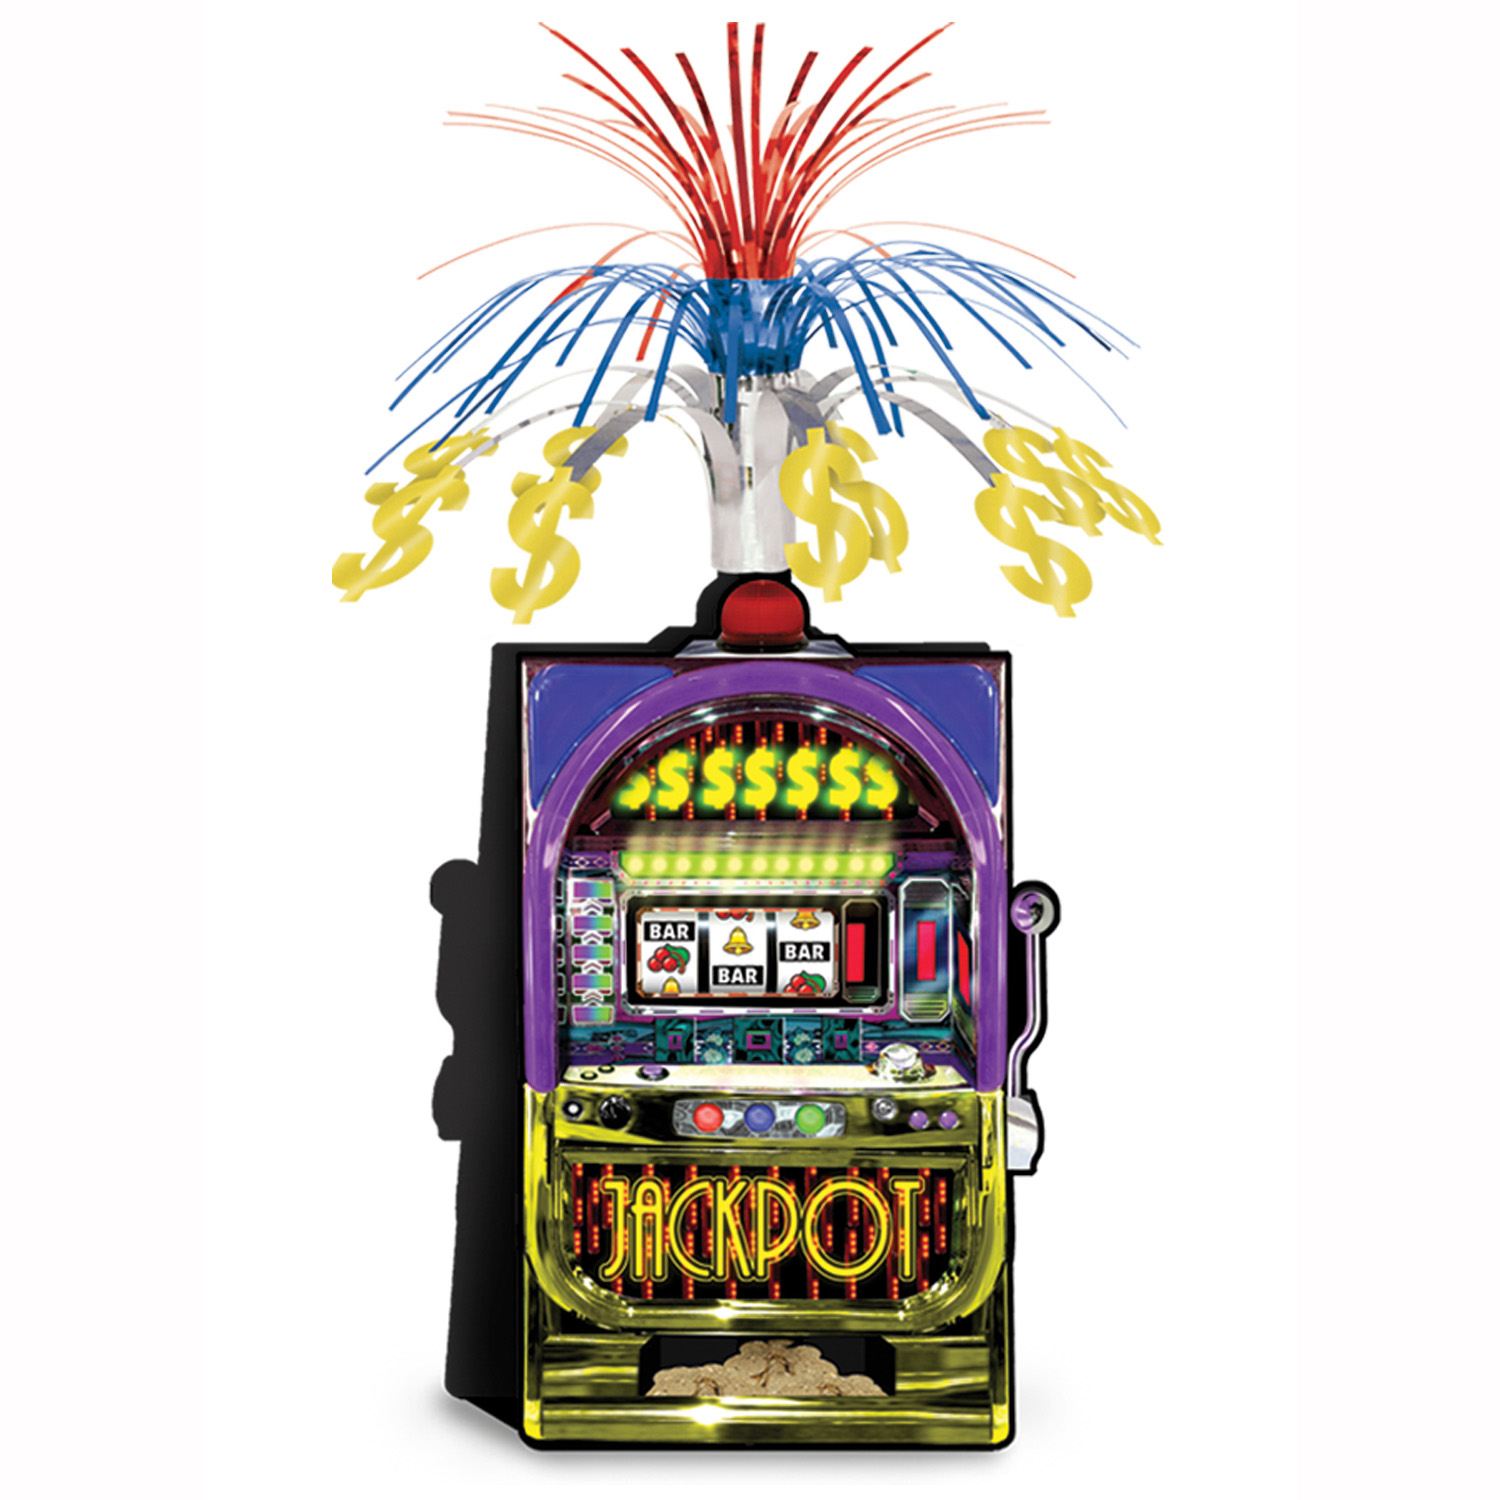 Slot Machine Centerpiece (Pack of 12) Slot Machine, Casino Centerpiece, Cascade Centerpiece, Cheap party decorations, Casino themed ideas, Tableware, New Years Eve, Birthday party ideas, Wholesale party supplies